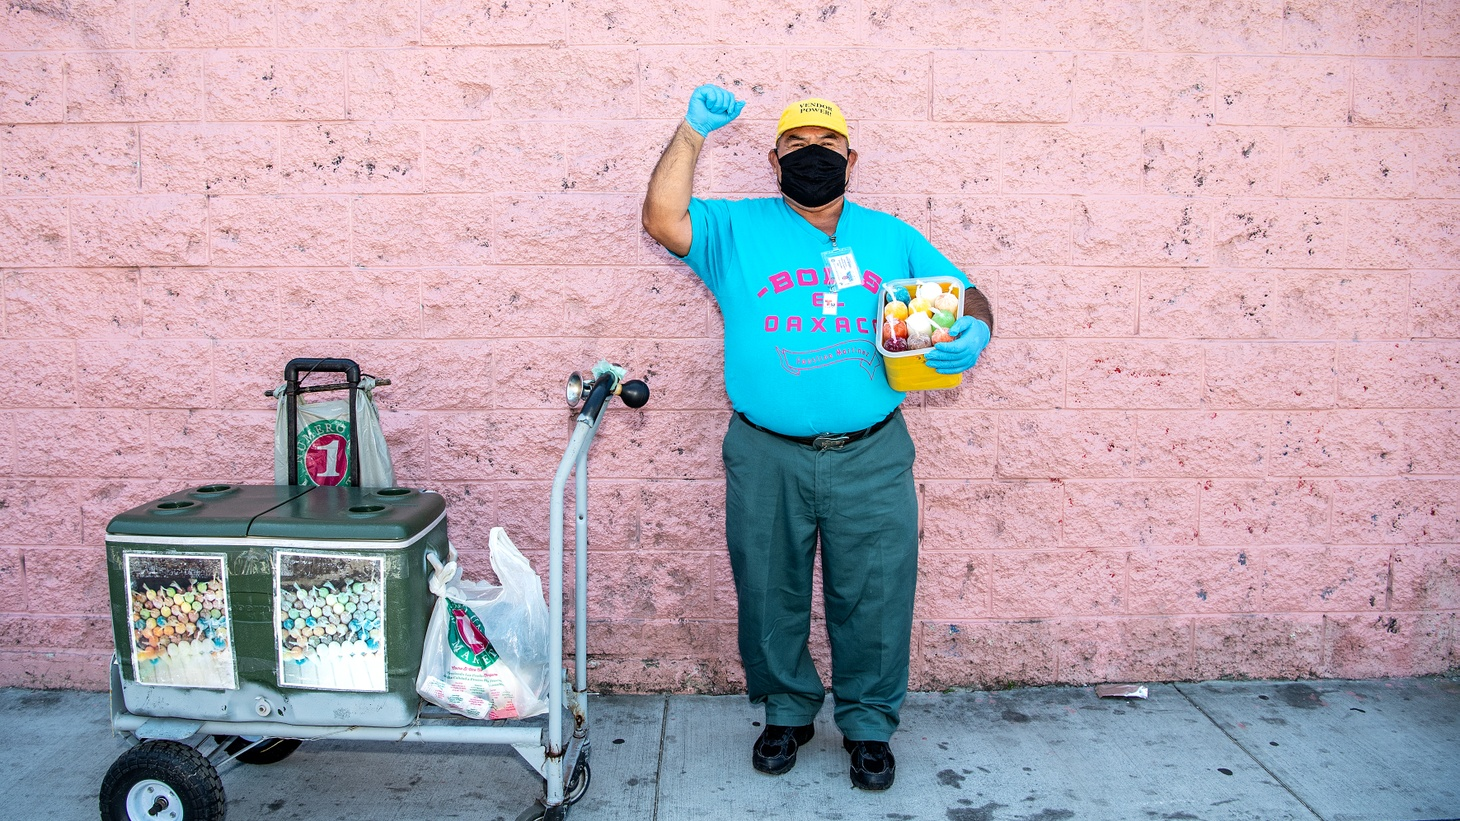 Faustino Martinez owns a pushcart business, Bolis El Oaxaco, that sells ice pops.